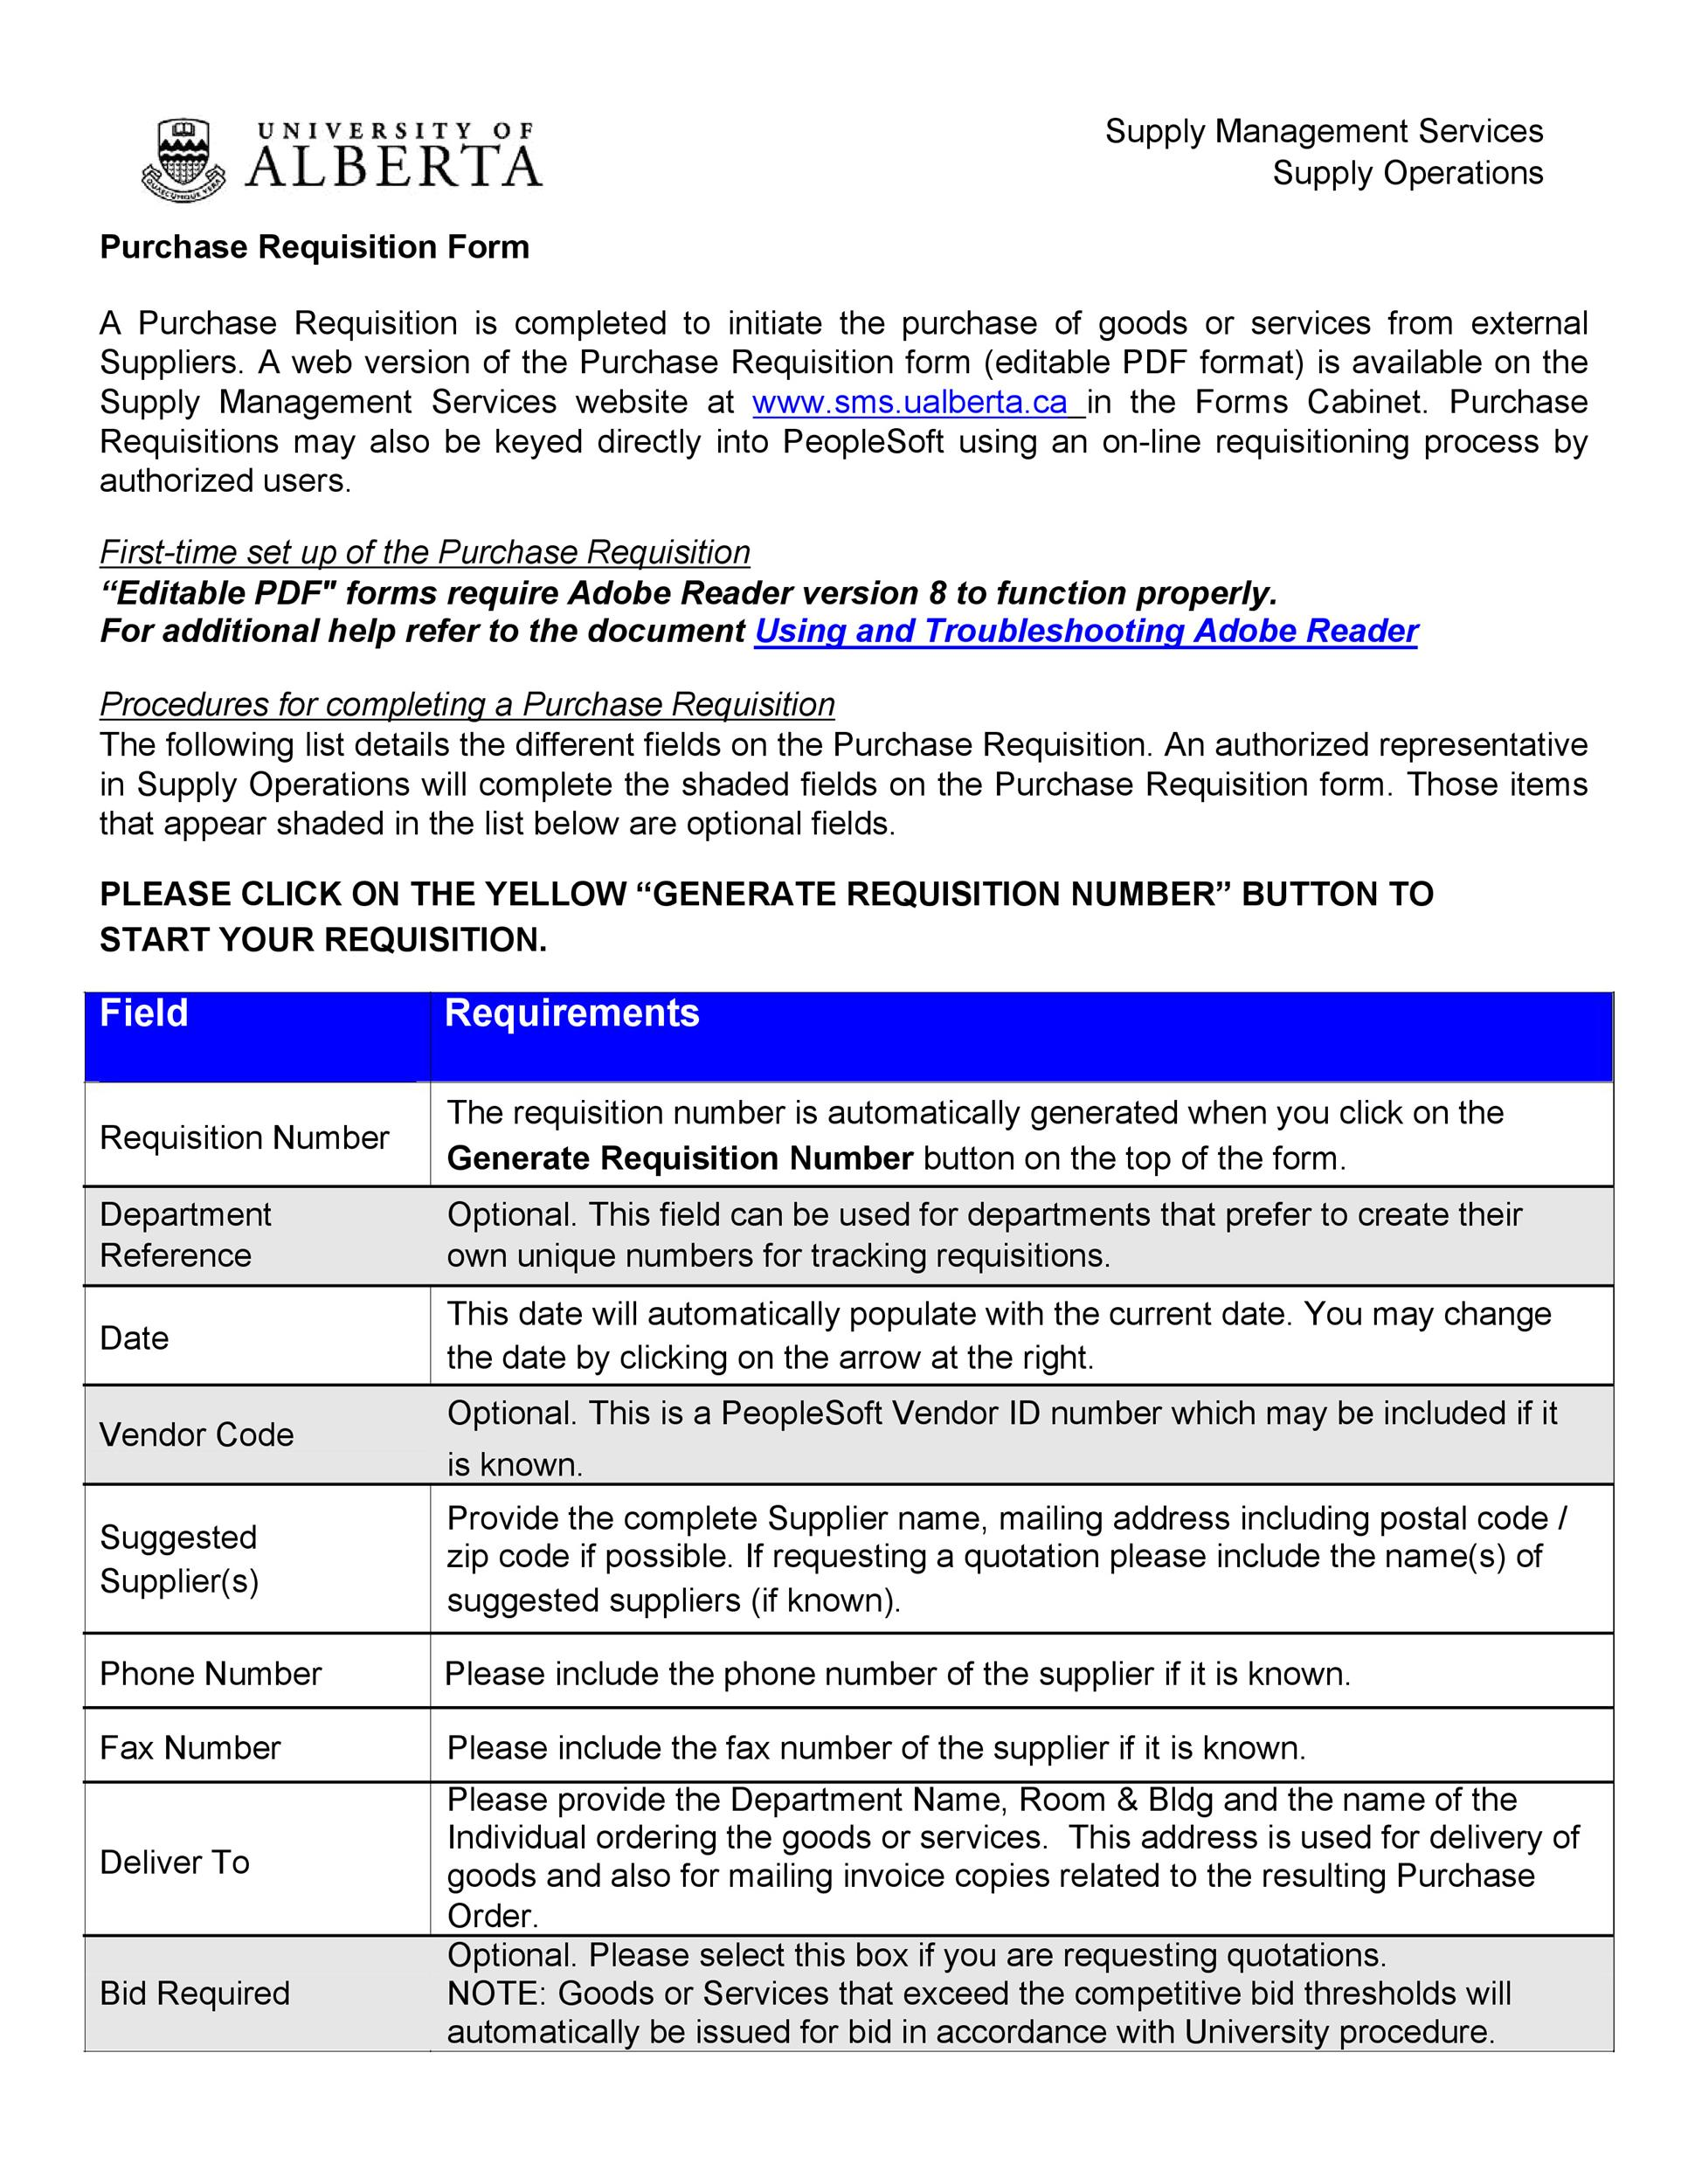 Free requisition form 19